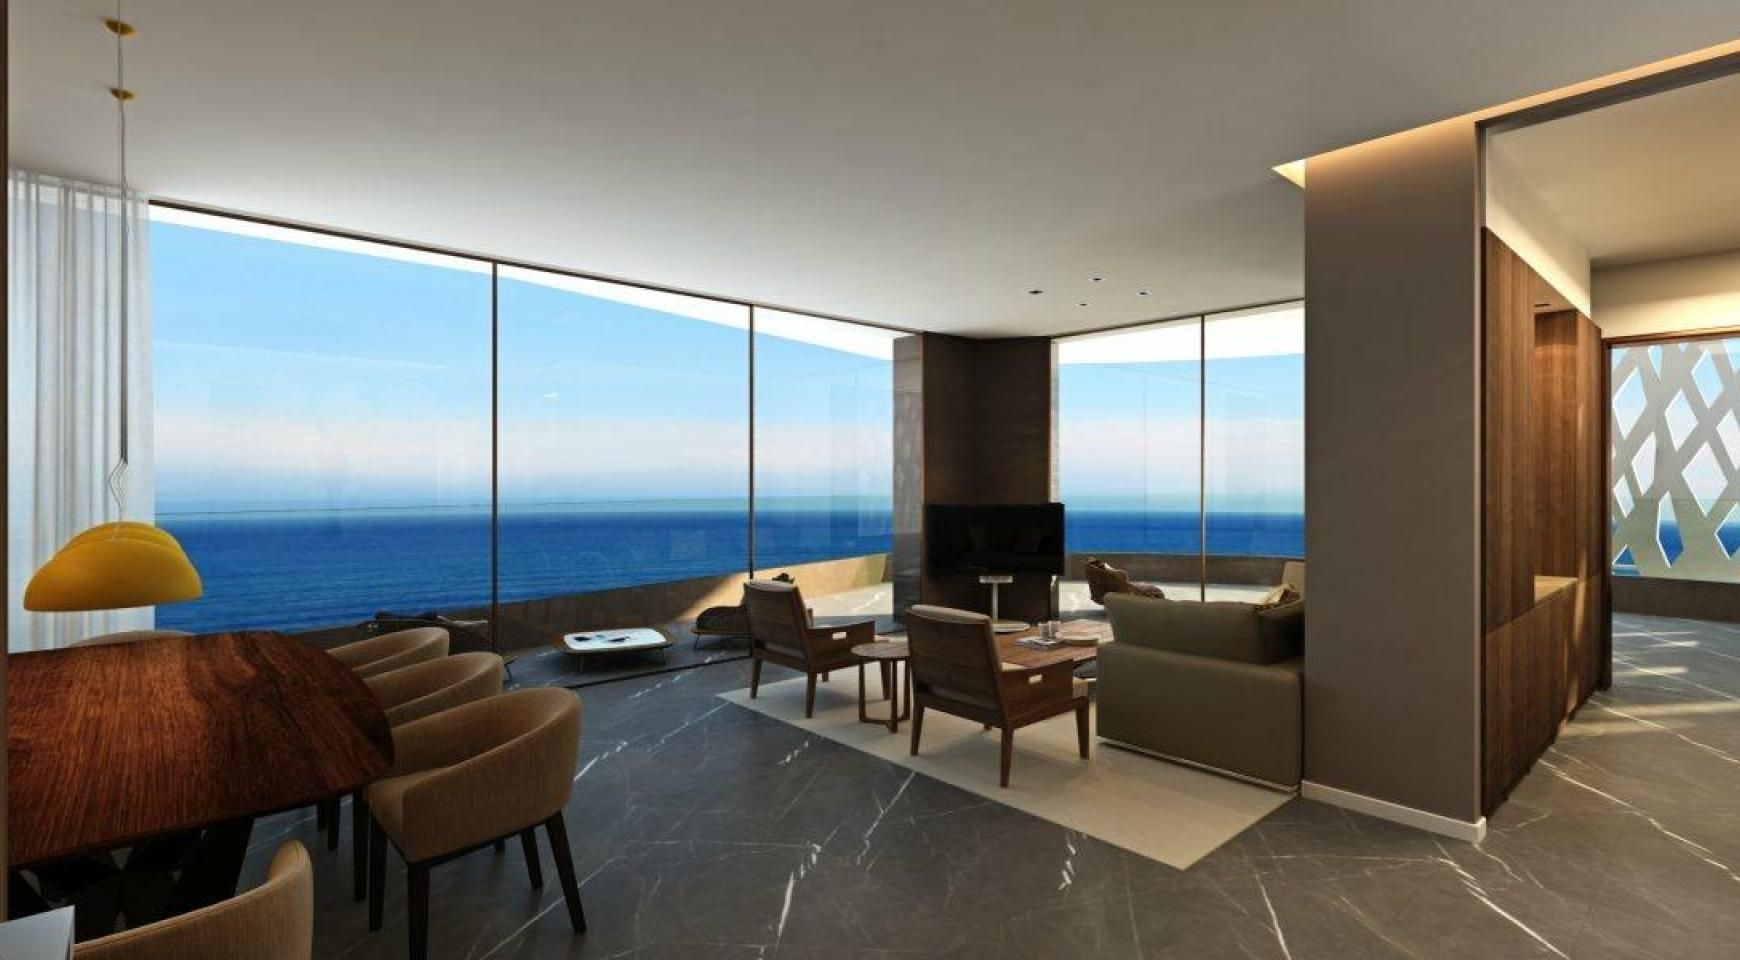 Modern 3 Bedroom Apartment in a New Unique Project by the Sea - 17